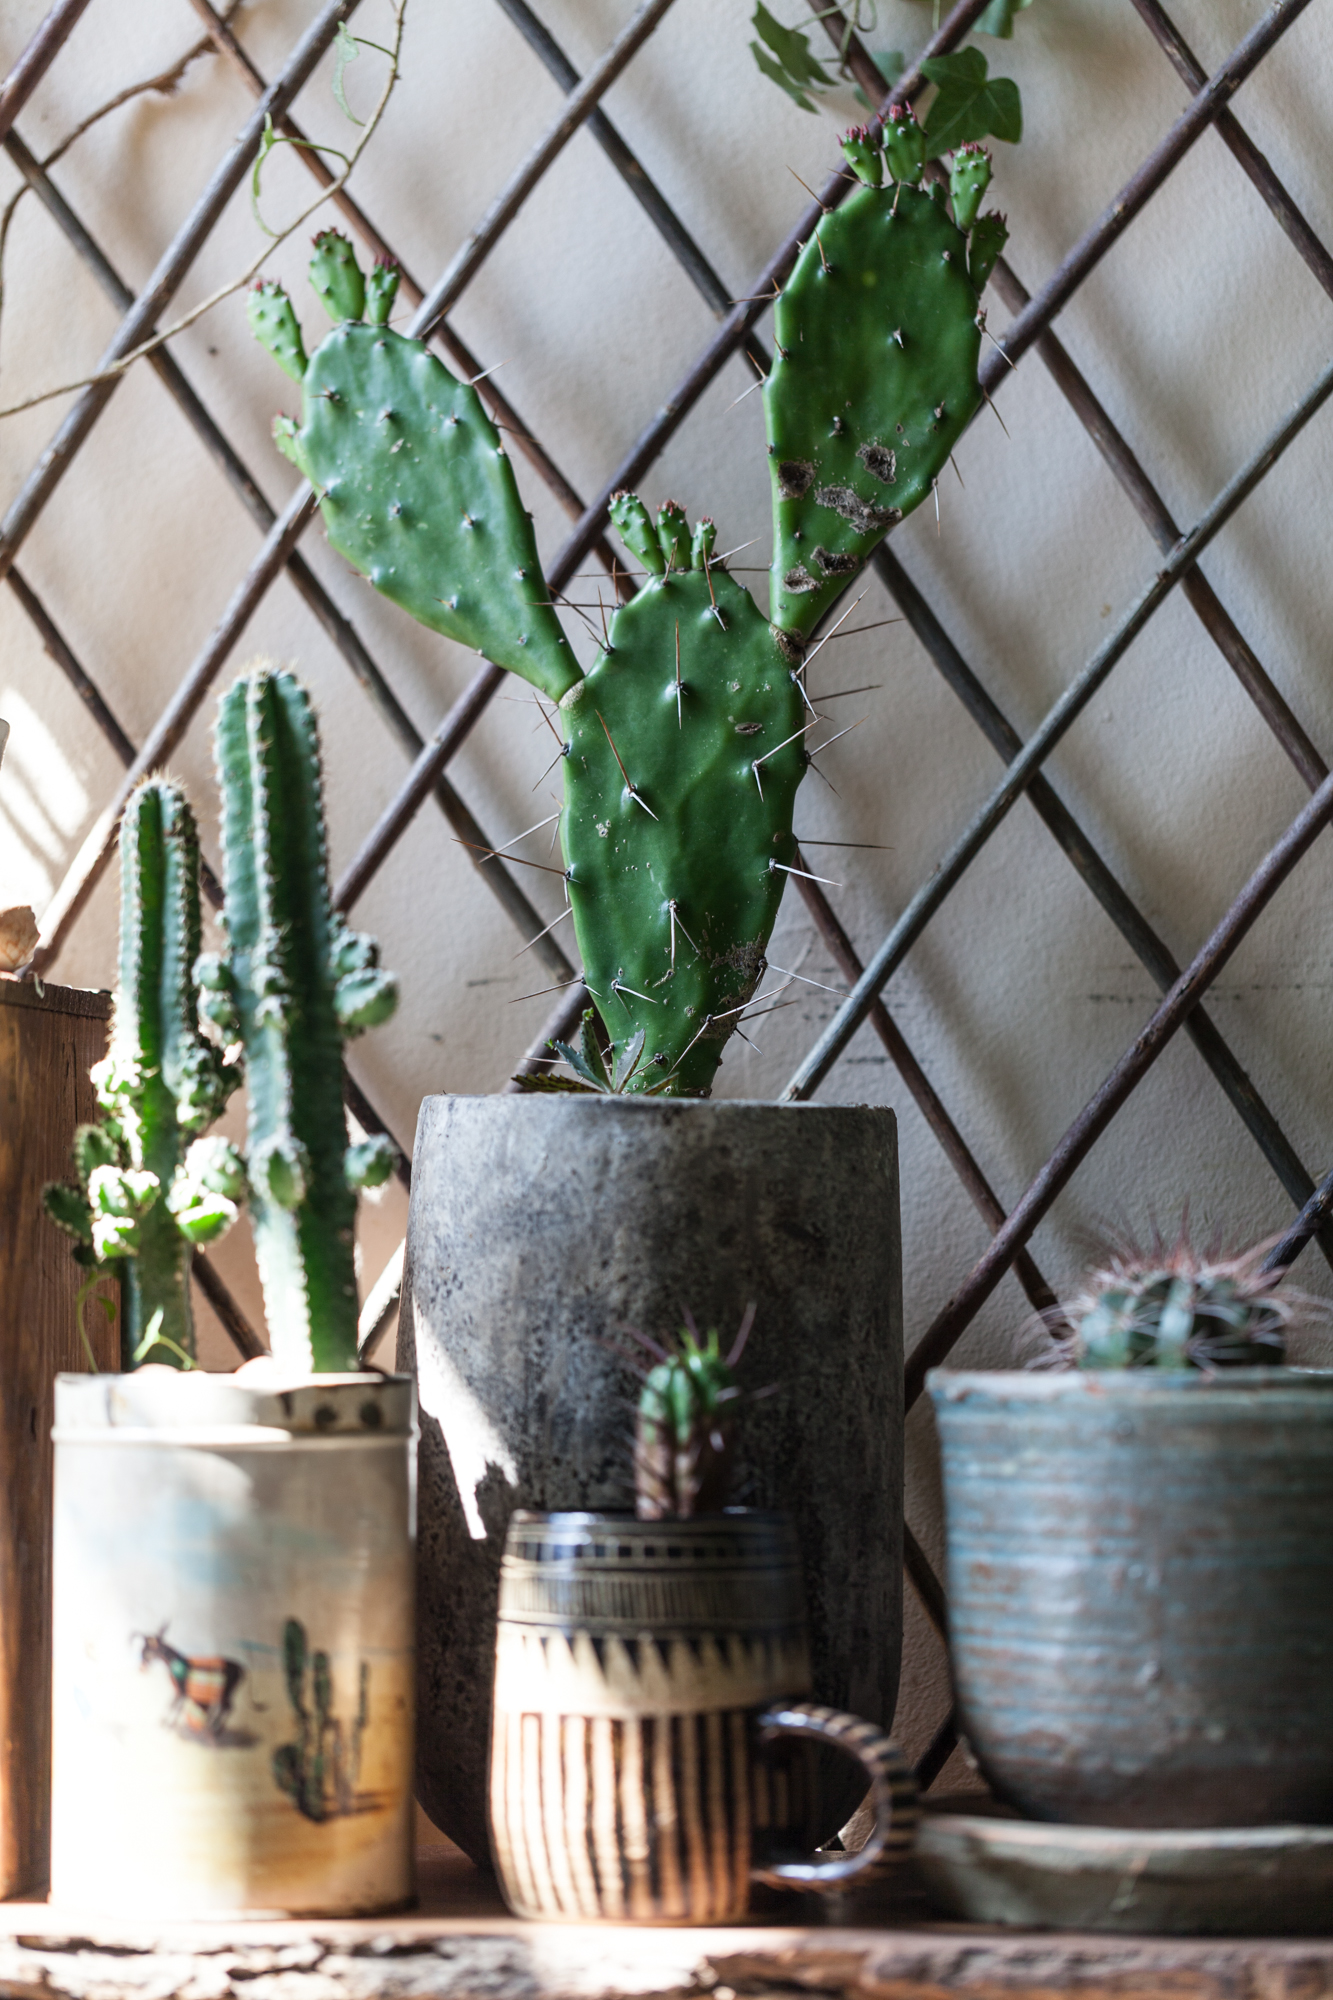 A little snippet of love in my Cacti Corner.